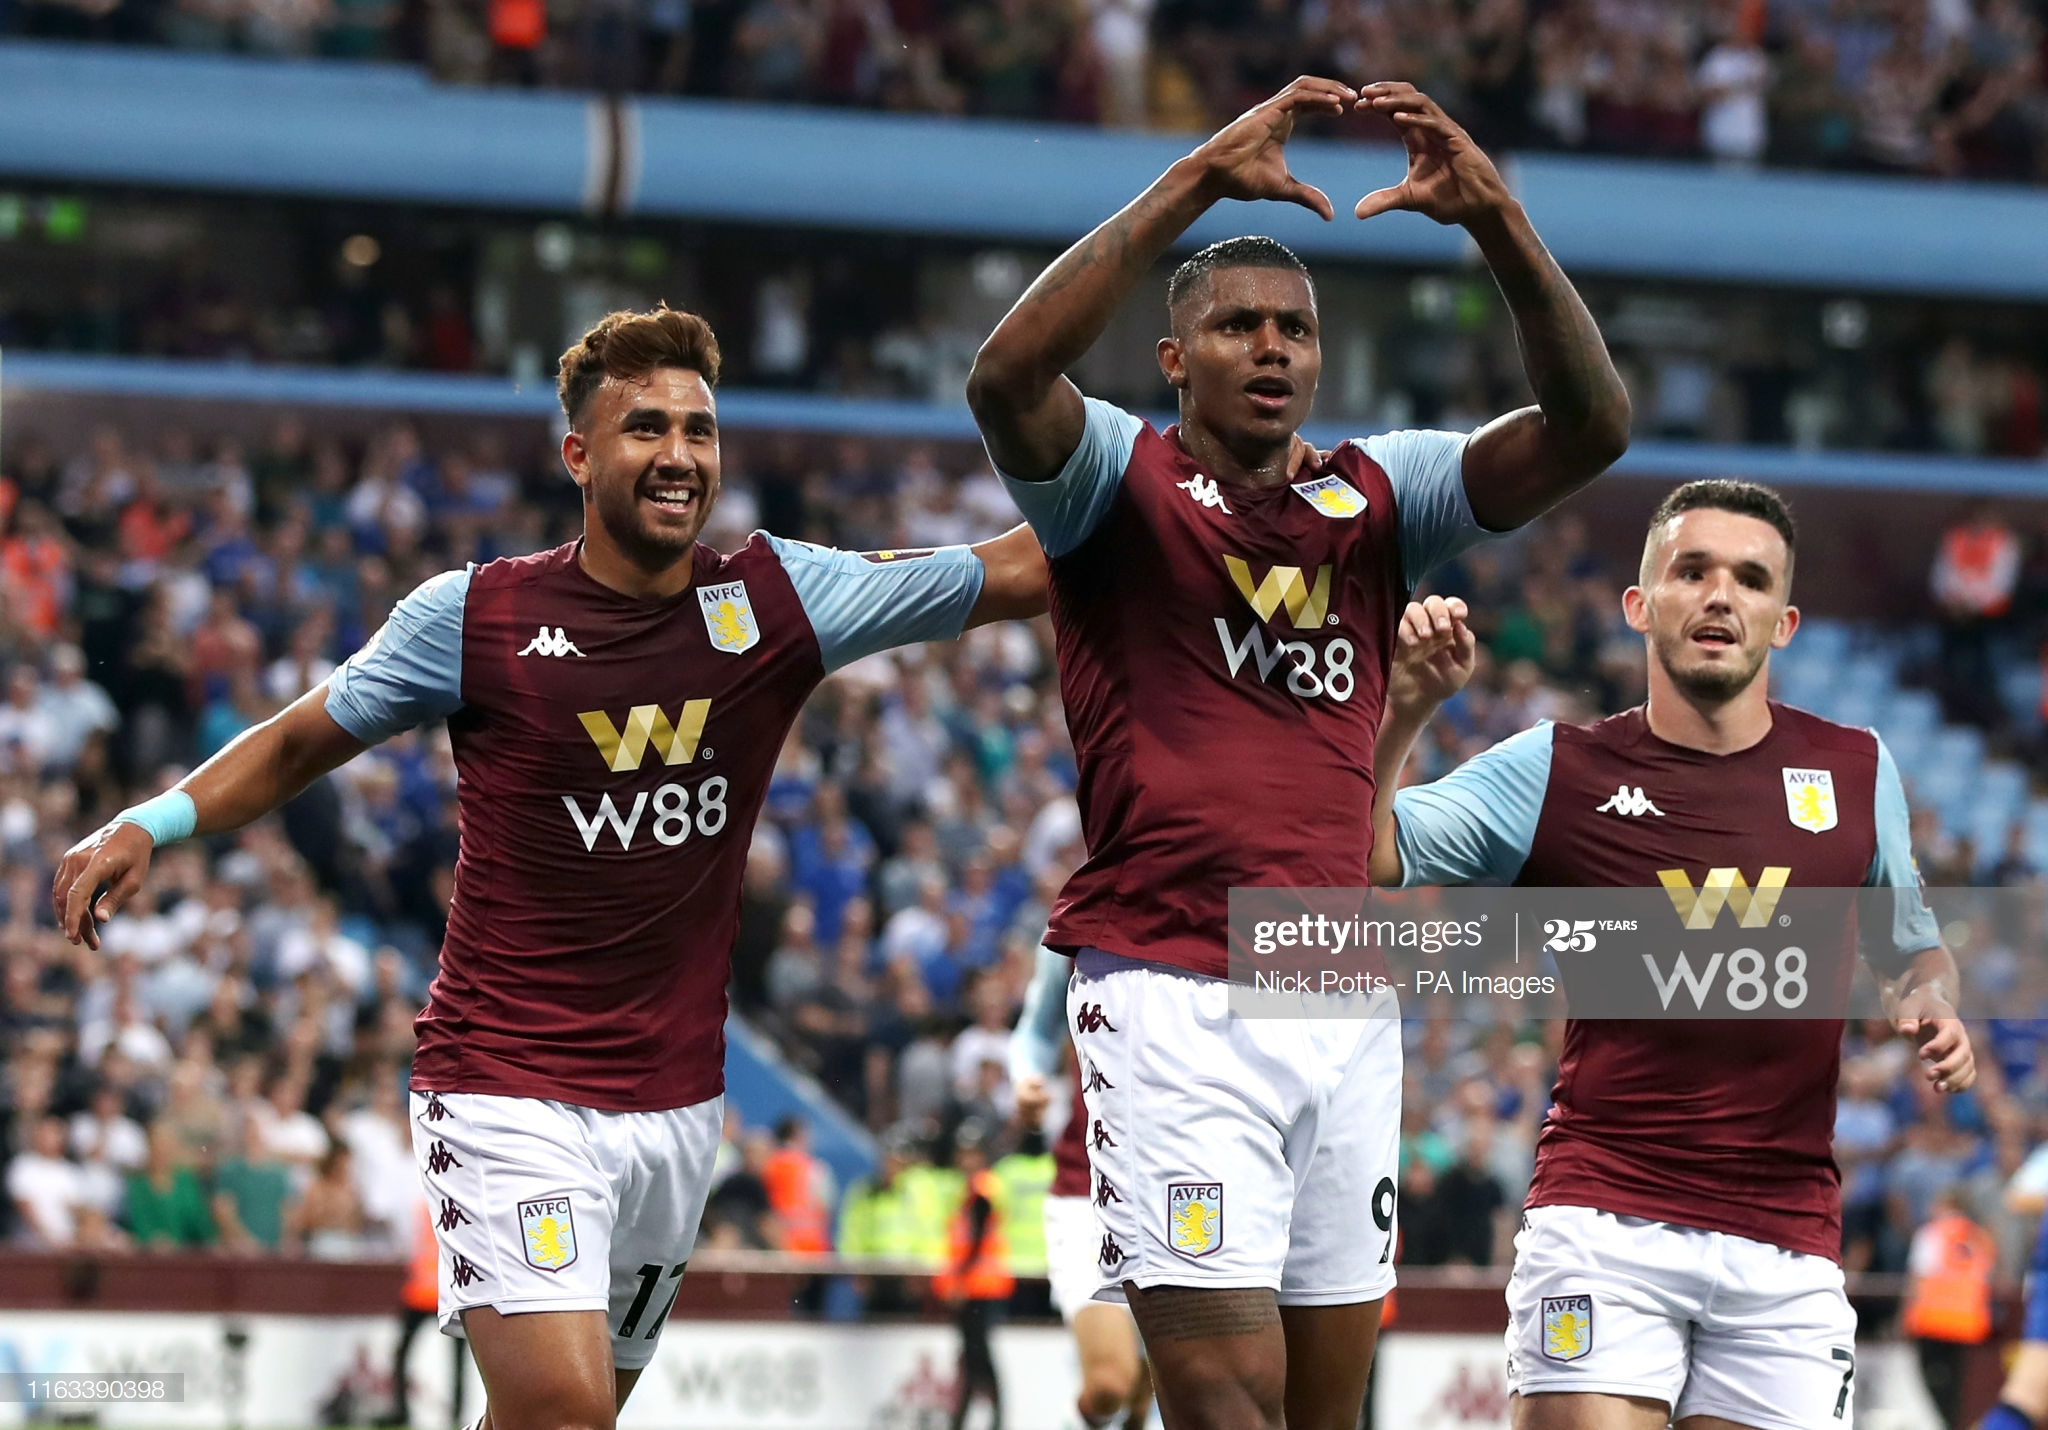 Aston Villa vs Wolves preview, analysis and team news